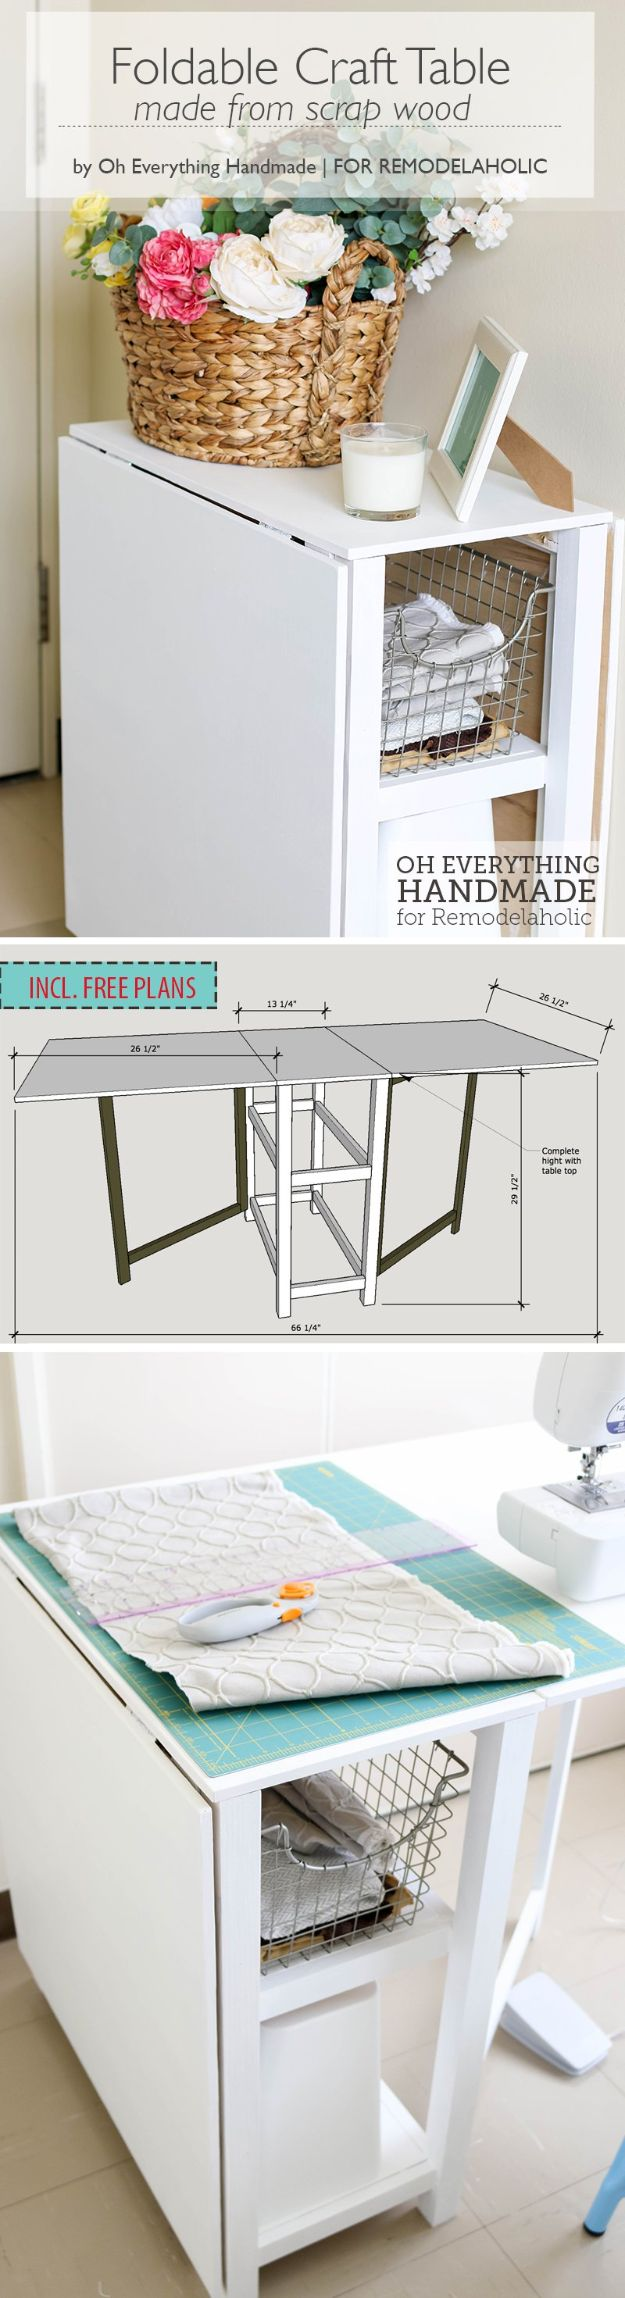 Craft Room Organization Ideas - DIY Foldable Craft Table - DIY Dollar Store Projects for Crafts - Budget Ways to Declutter While Organizing Supplies - Shelves, IKEA Hacks, Small Space Ideas